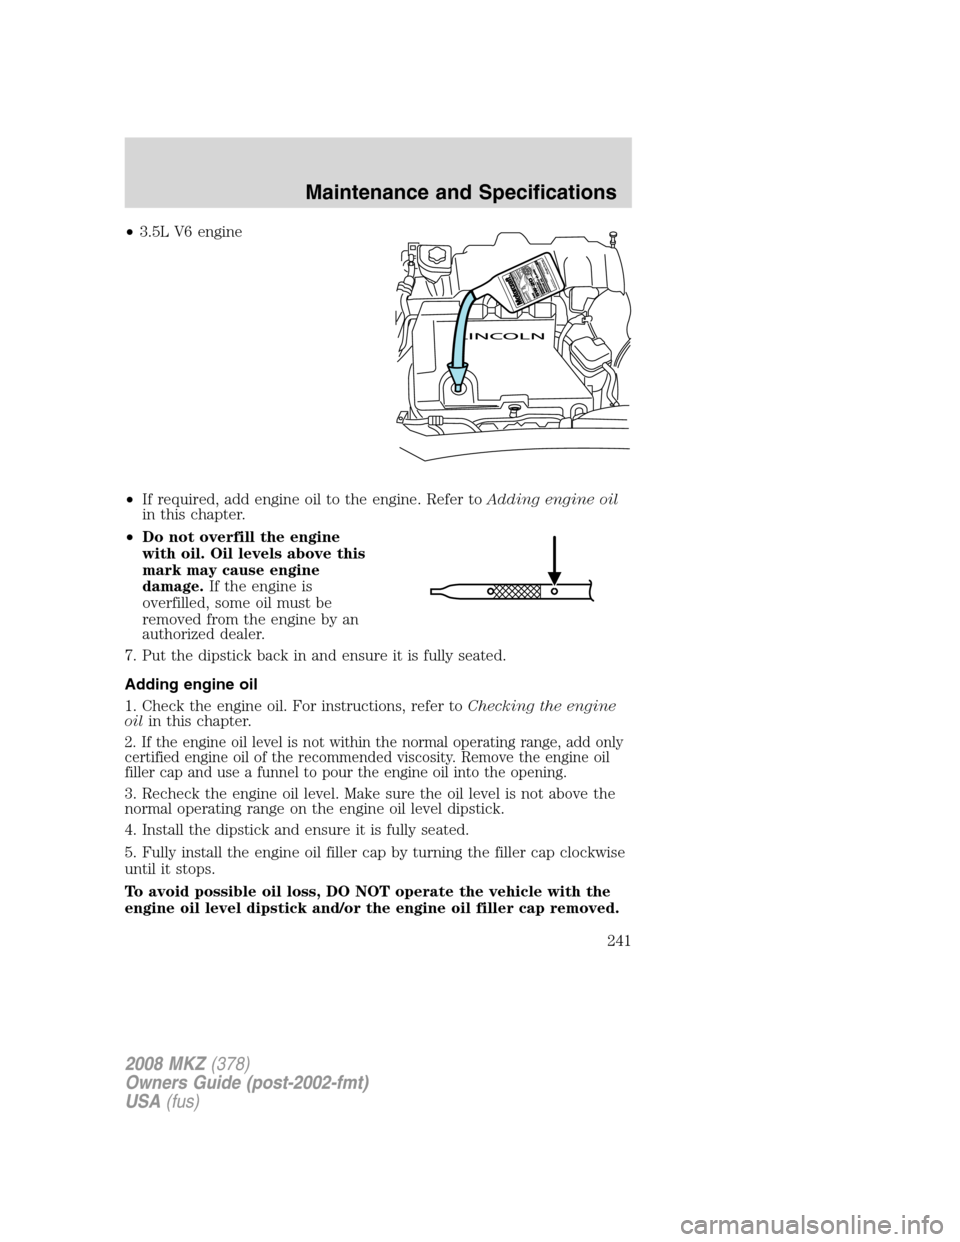 Oil Level Lincoln Mkz 2008 Owners Manual Mkx Engine Diagram Page 241